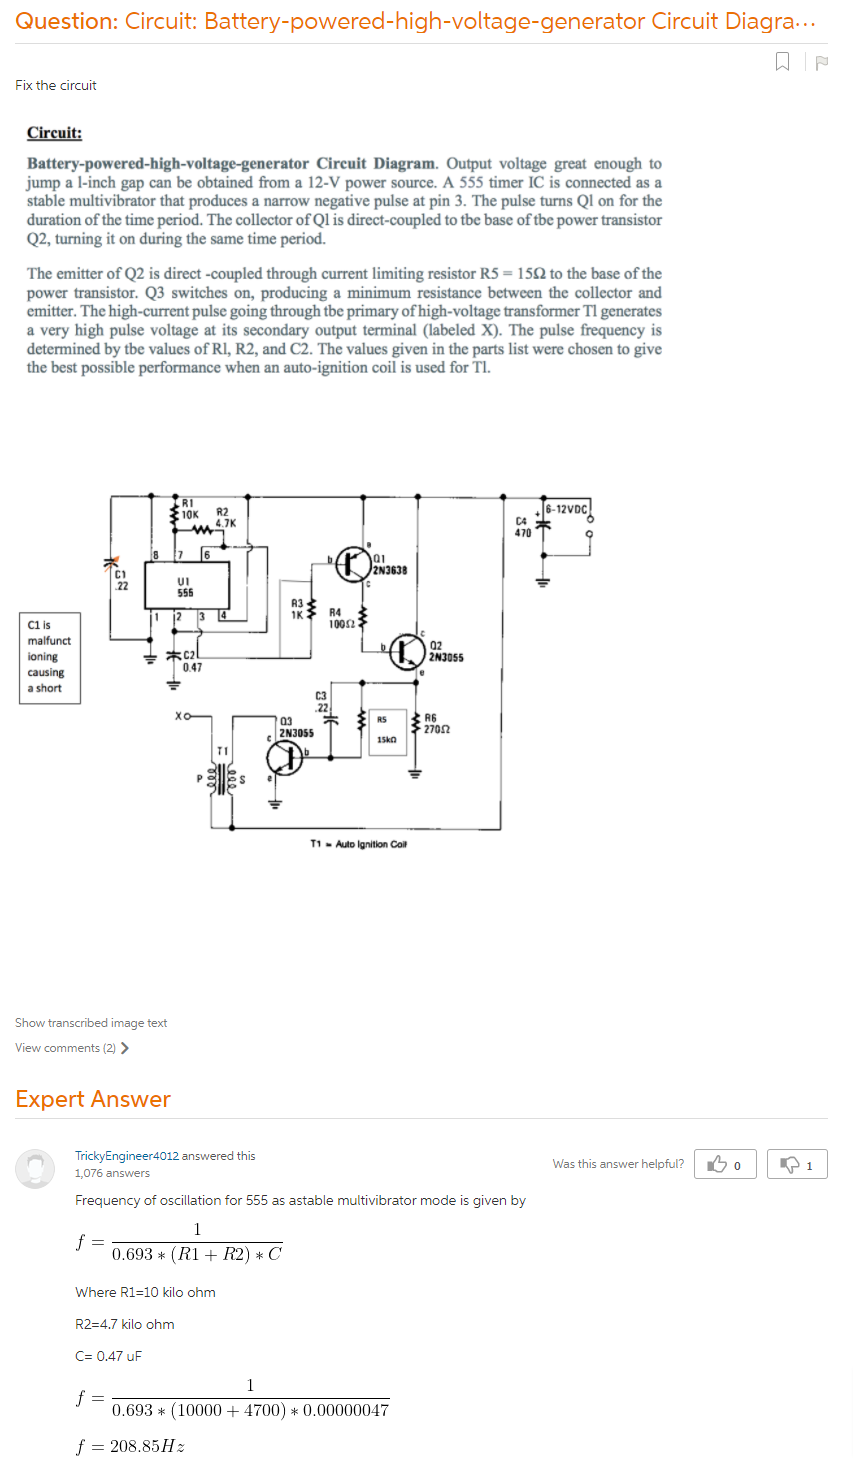 Circuit: Battery-powered-high-voltage-generator Circuit Diagram. Output  Voltage Great Enough To Jump A L-inch Gap Can Be Obtained From A 12-V Power  Source. A 555 Timer IC Is Connected As A Table Multivibrator That Produces  A Narrow Negative Pulse At Pin 3. The Pulse Turns Q1 On For The Duration Of  The Time Period. The Collector Of Ql Is Direct-coupled ...